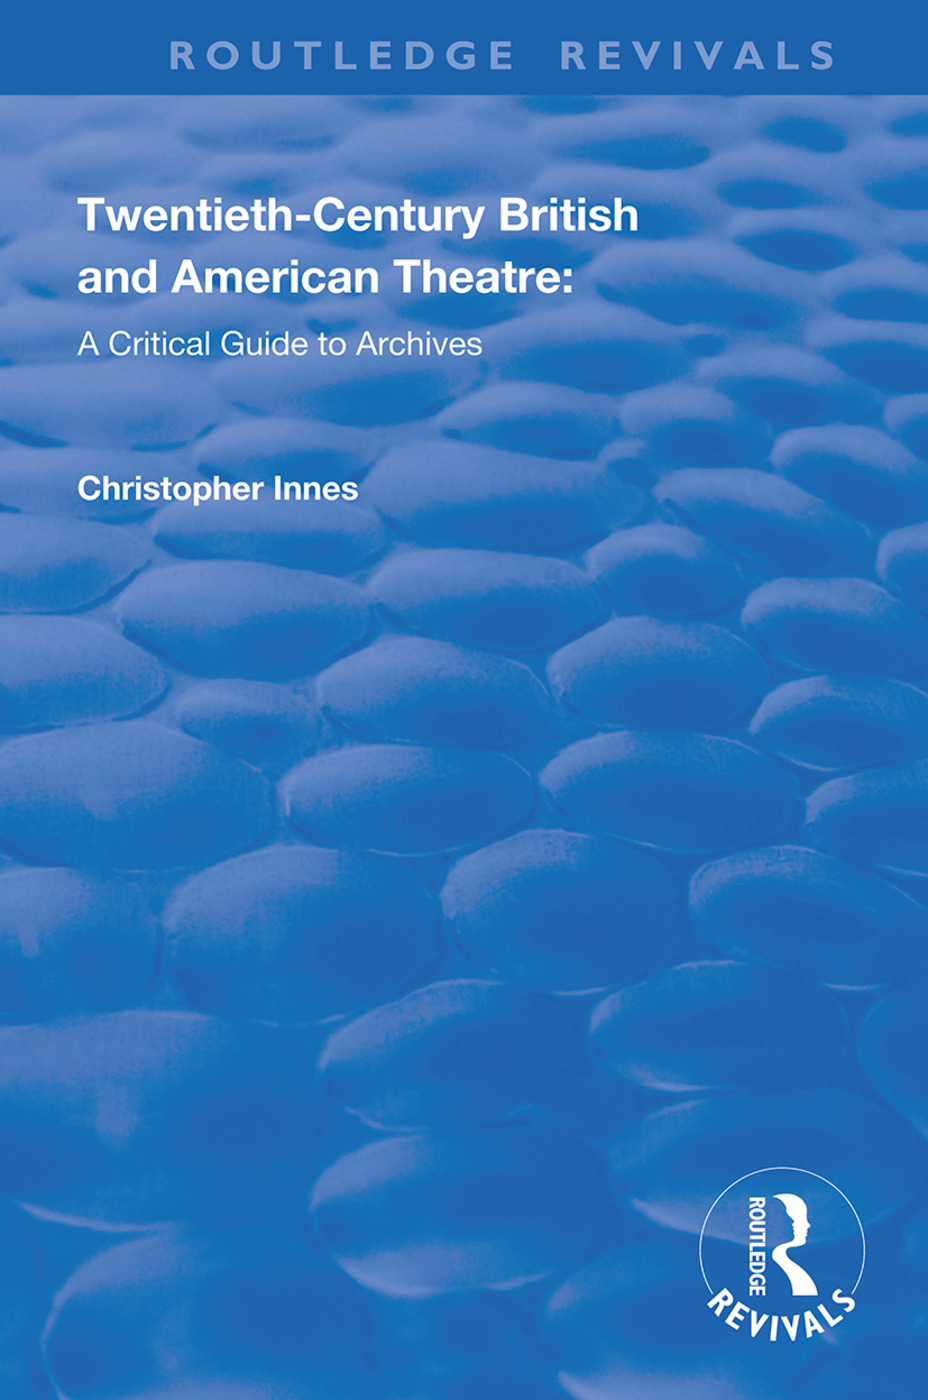 Twentieth-Century British and American Theatre: A Critical Guide to Archives book cover